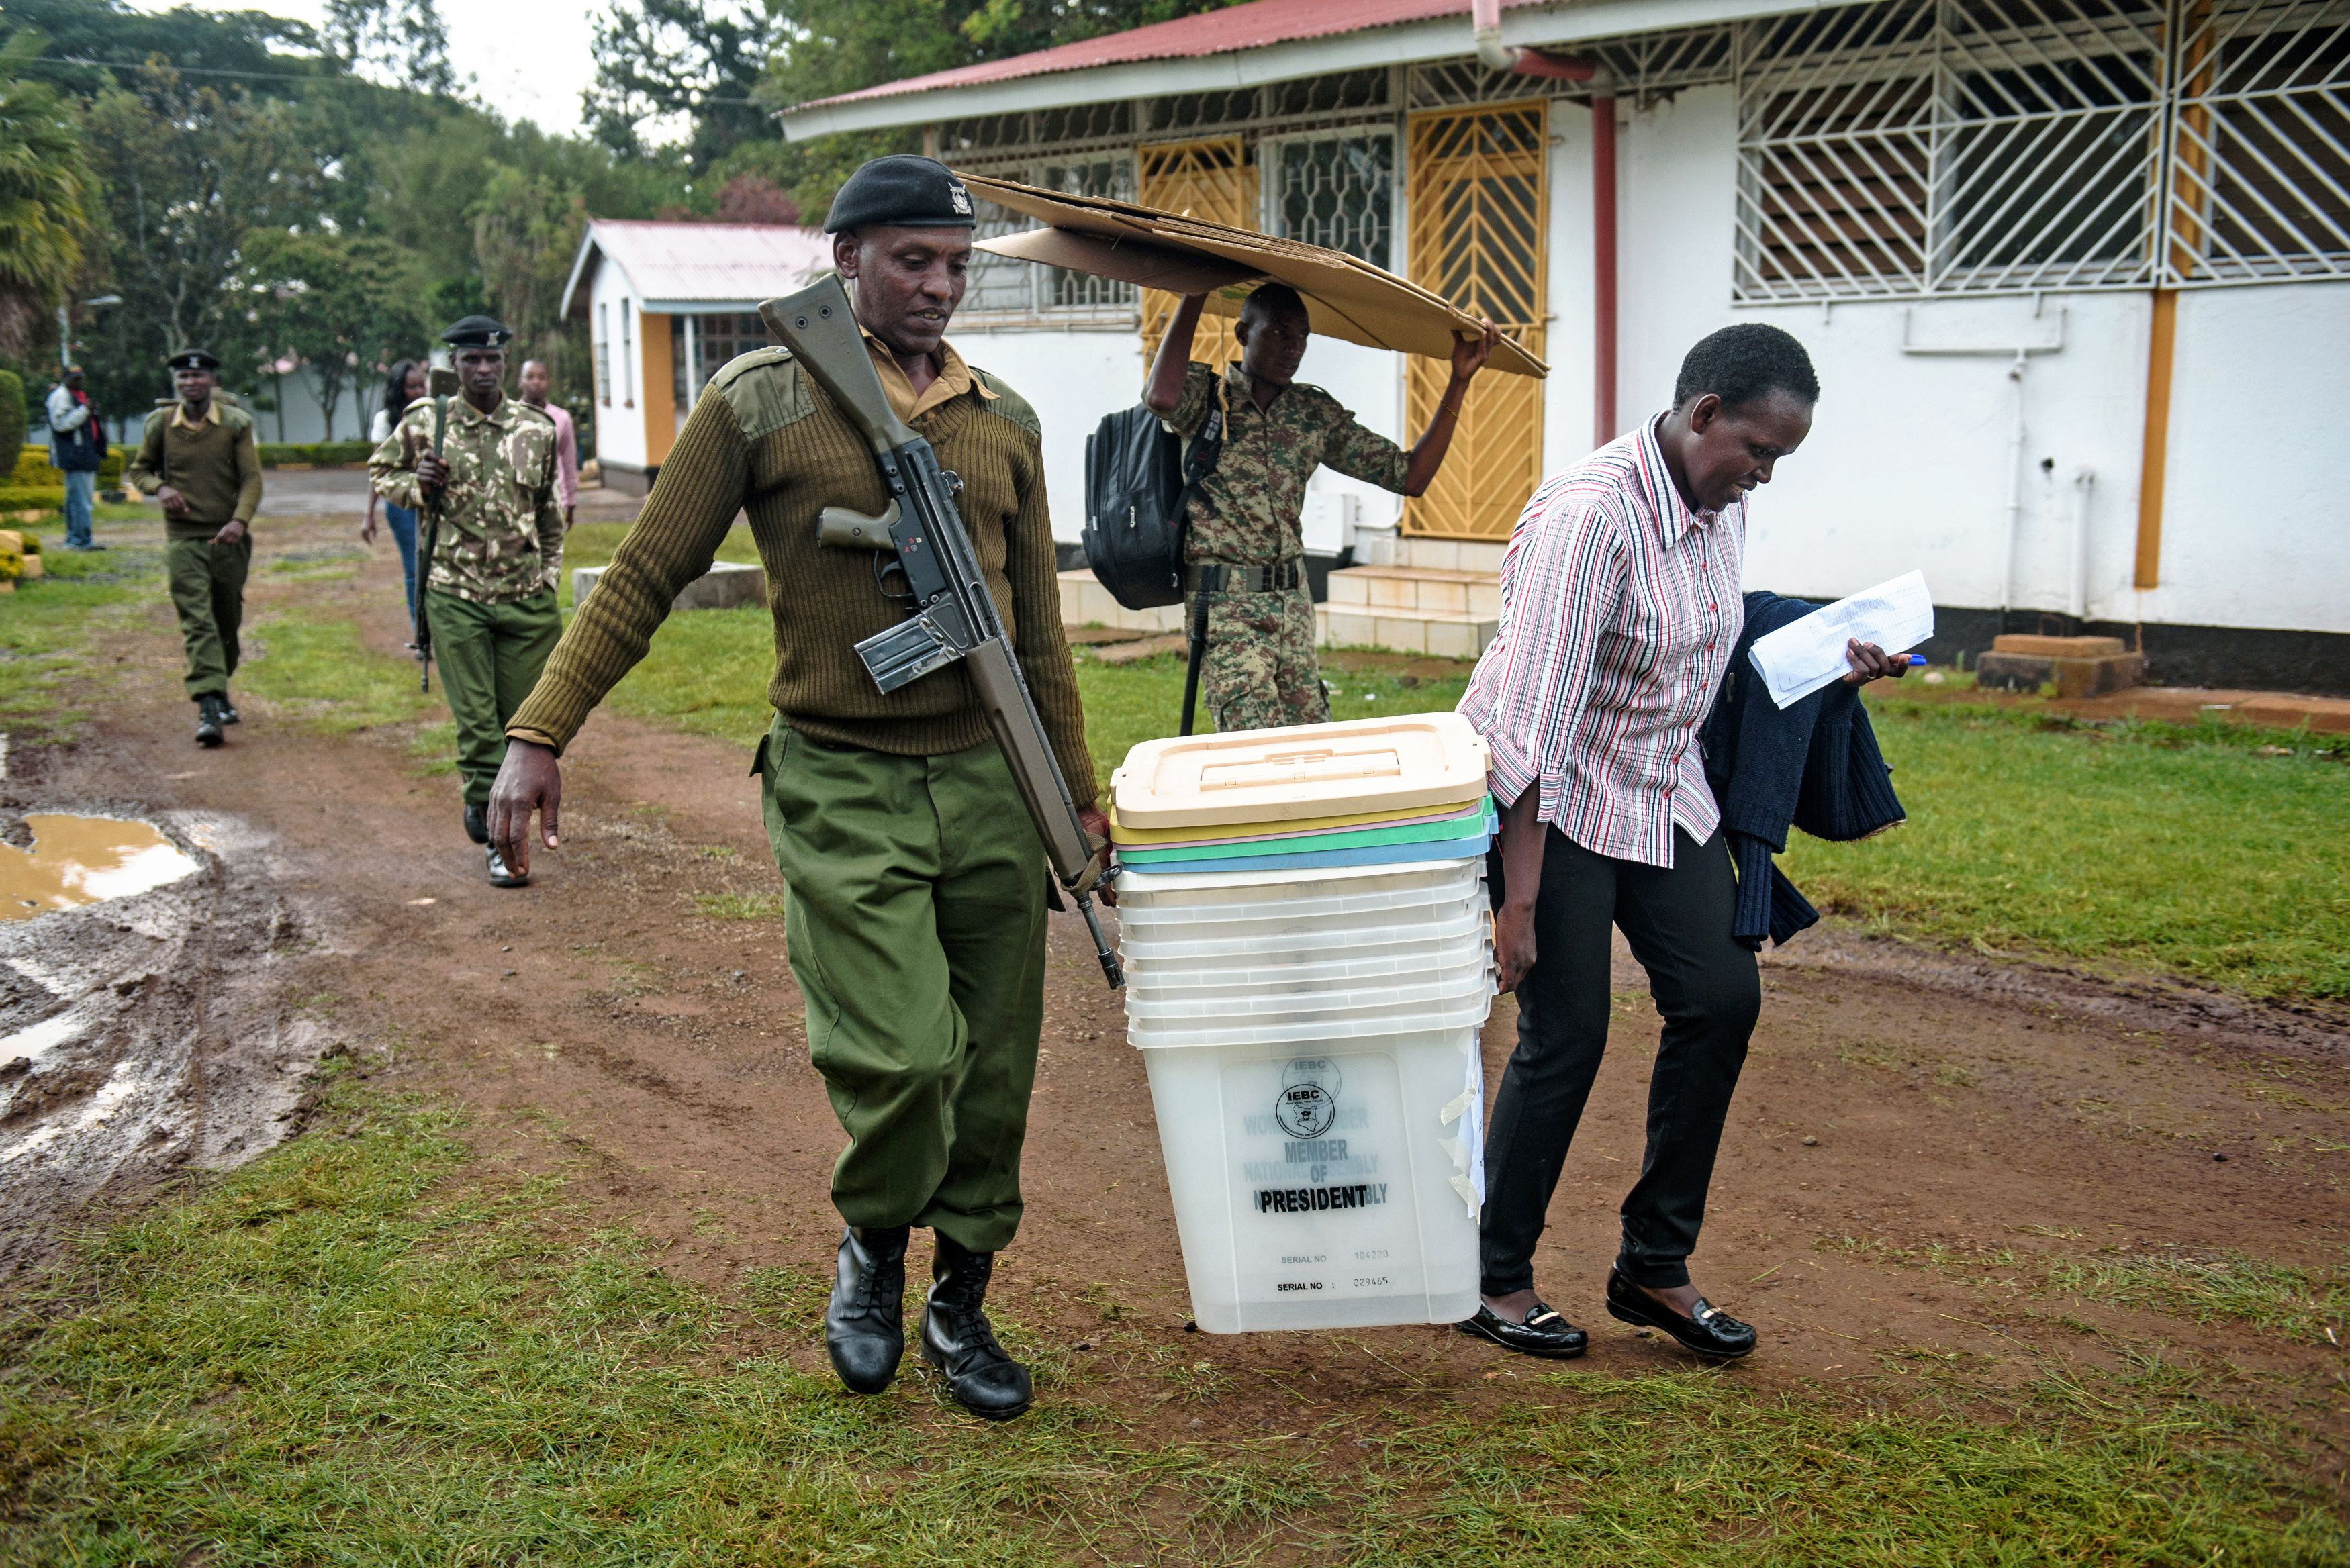 A police officer and an polling official carry ballot boxes in Eldoret, Kenya on Aug. 7, 2017.